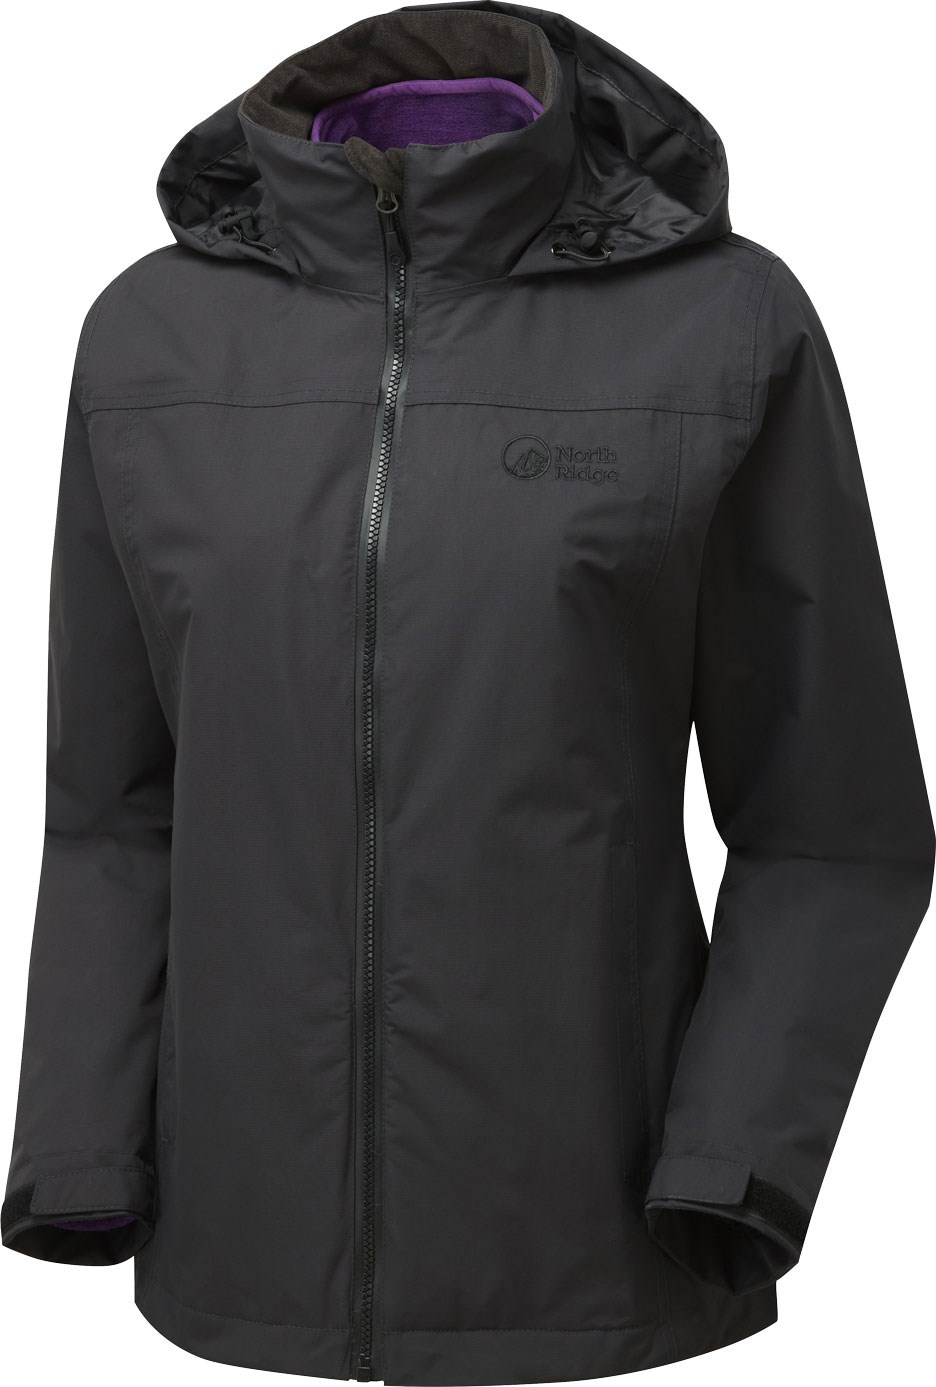 Womens Waterproof Jackets & Winter Coats | GO Outdoors